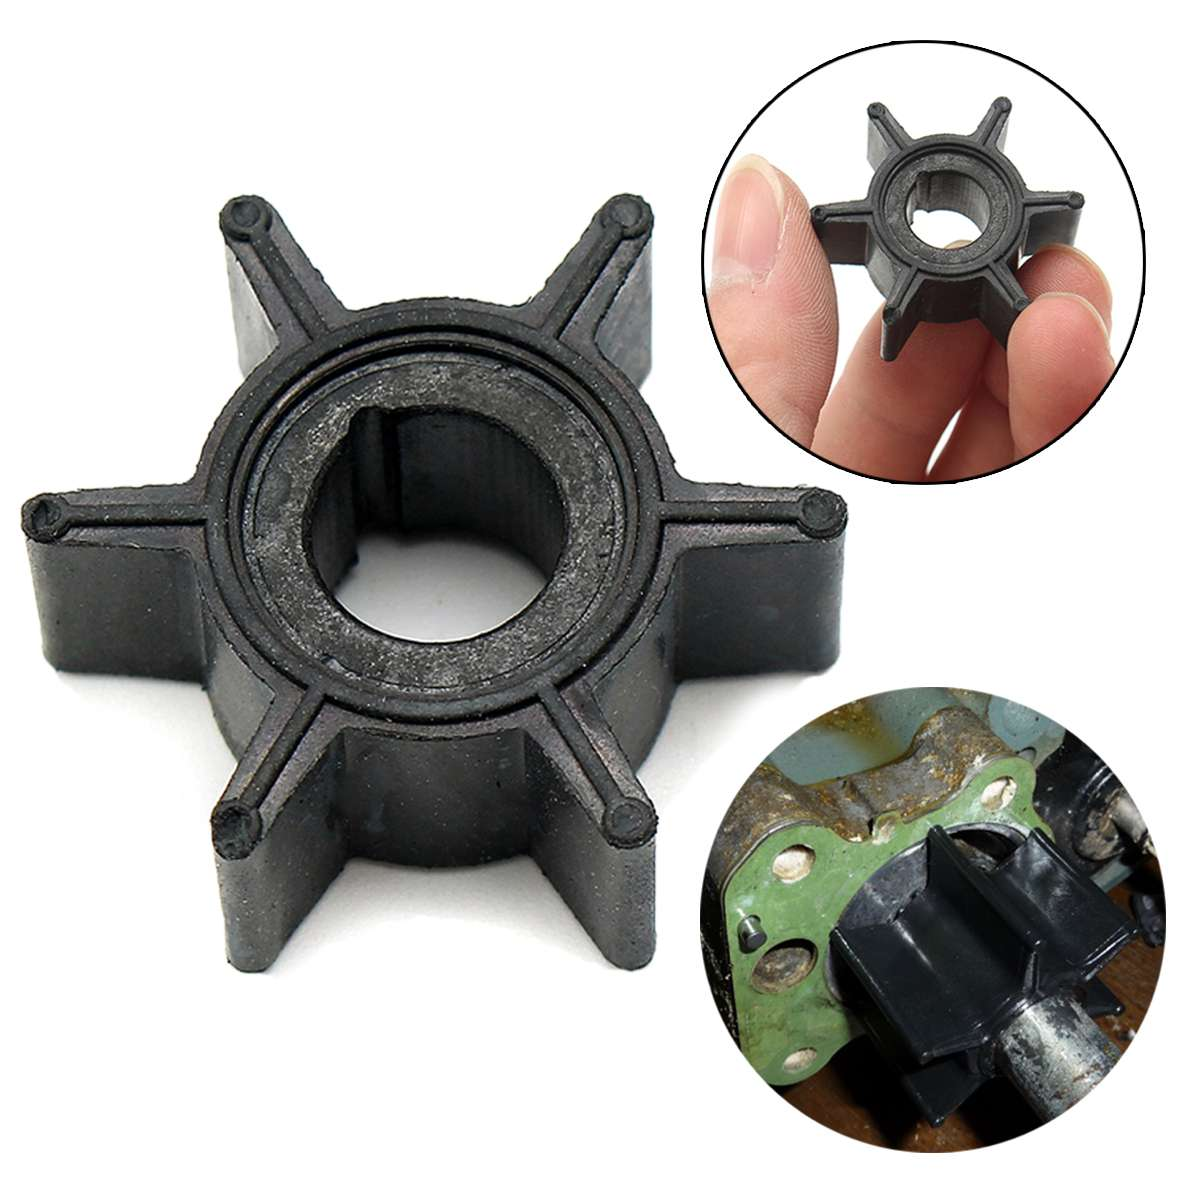 47-16154-3 Water Pump Impeller For Tohatsu/Mercury/Sierra 2/2.5/3.5/4/5/6HP Outboard Motor Rubber Diameter 3.4cm 6 Blades Black